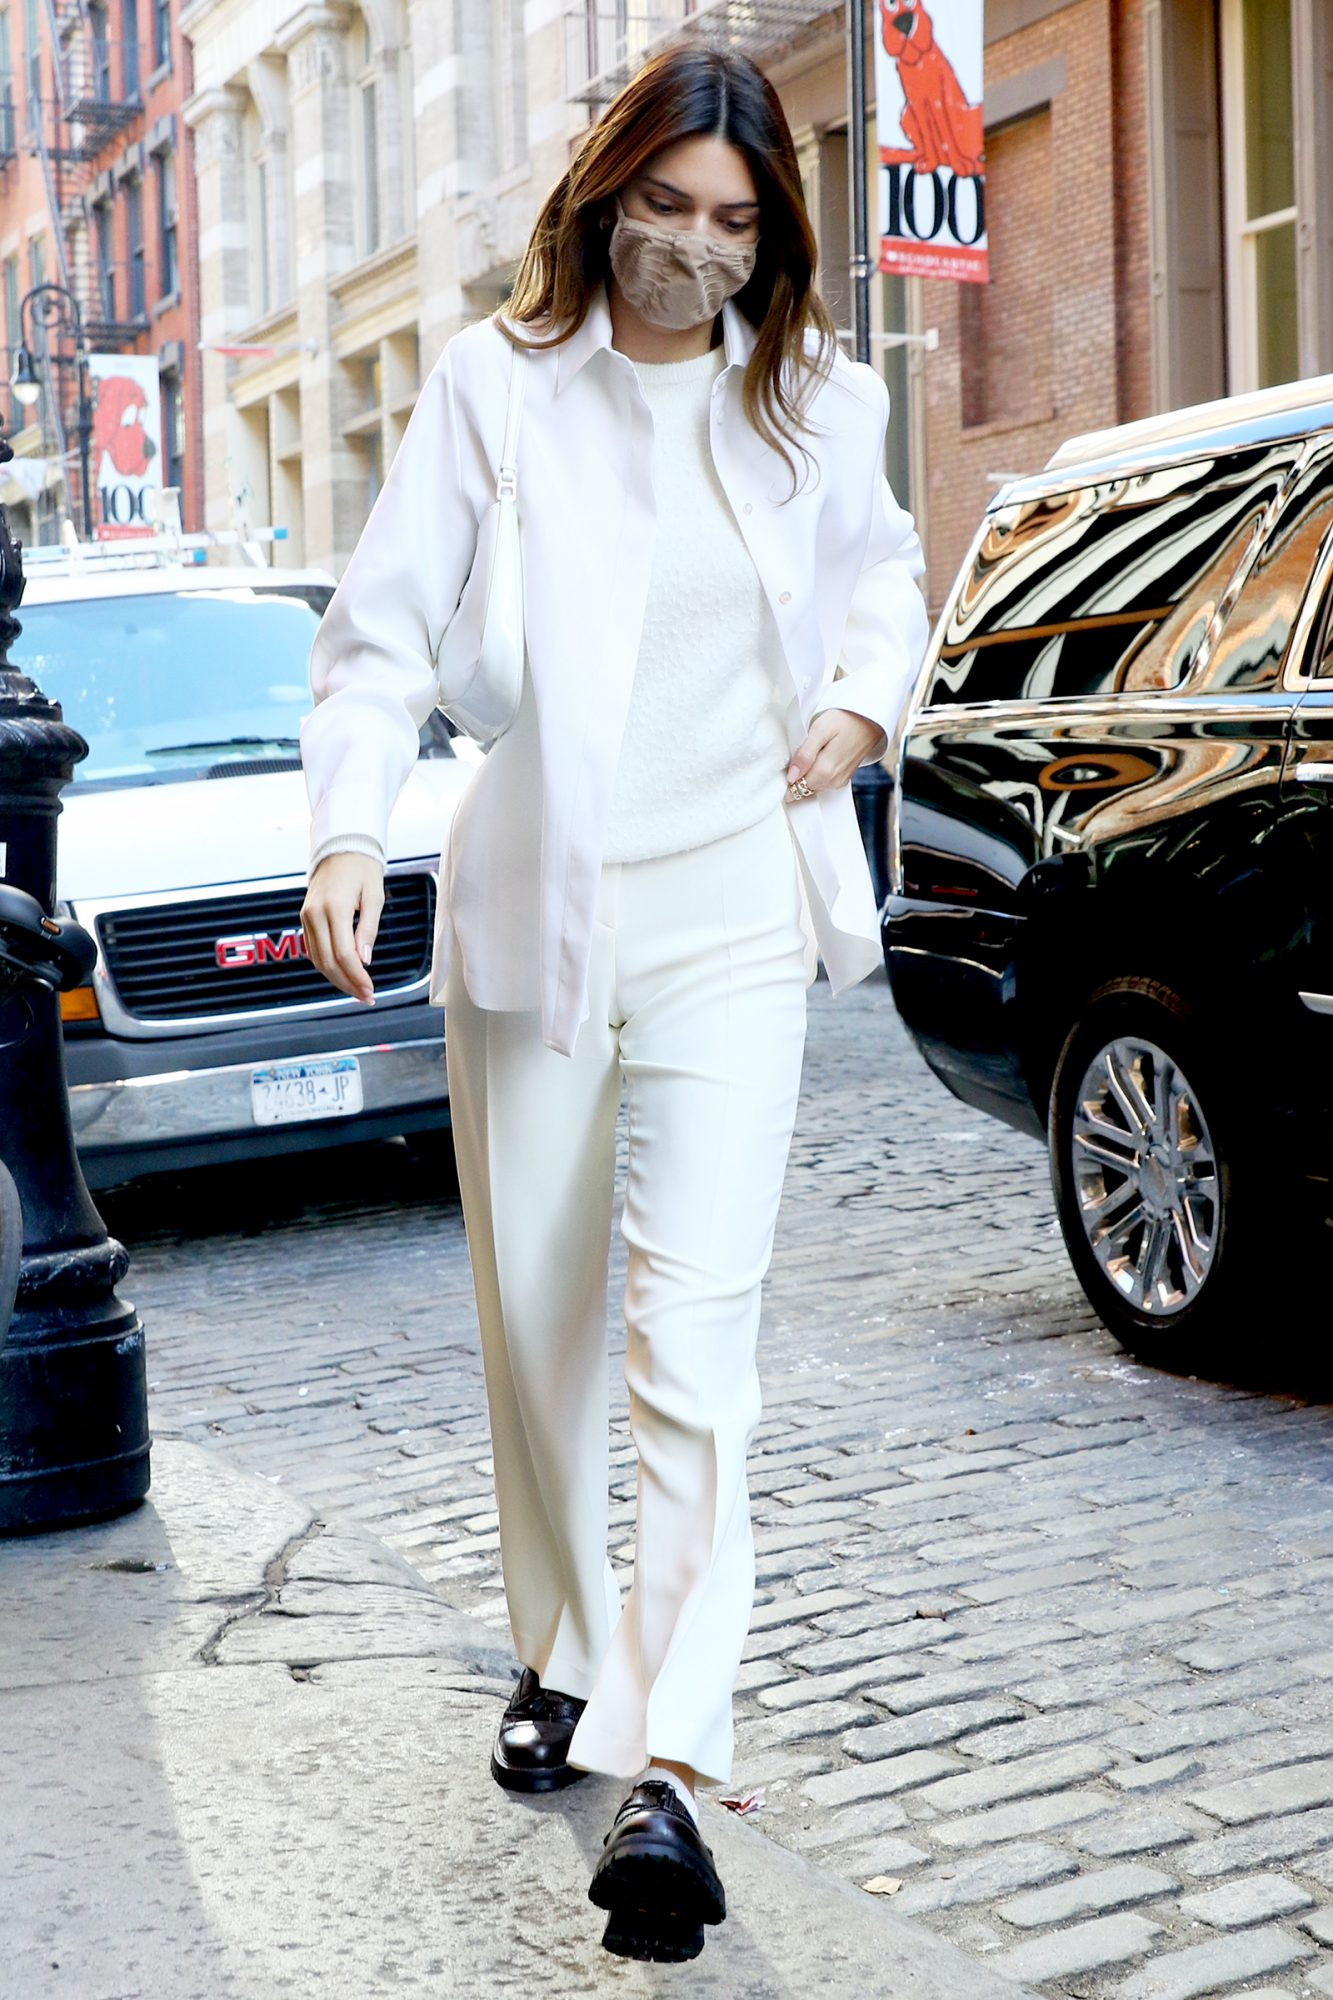 Kendall Jenner pictured out and about in Soho, Manhattan.